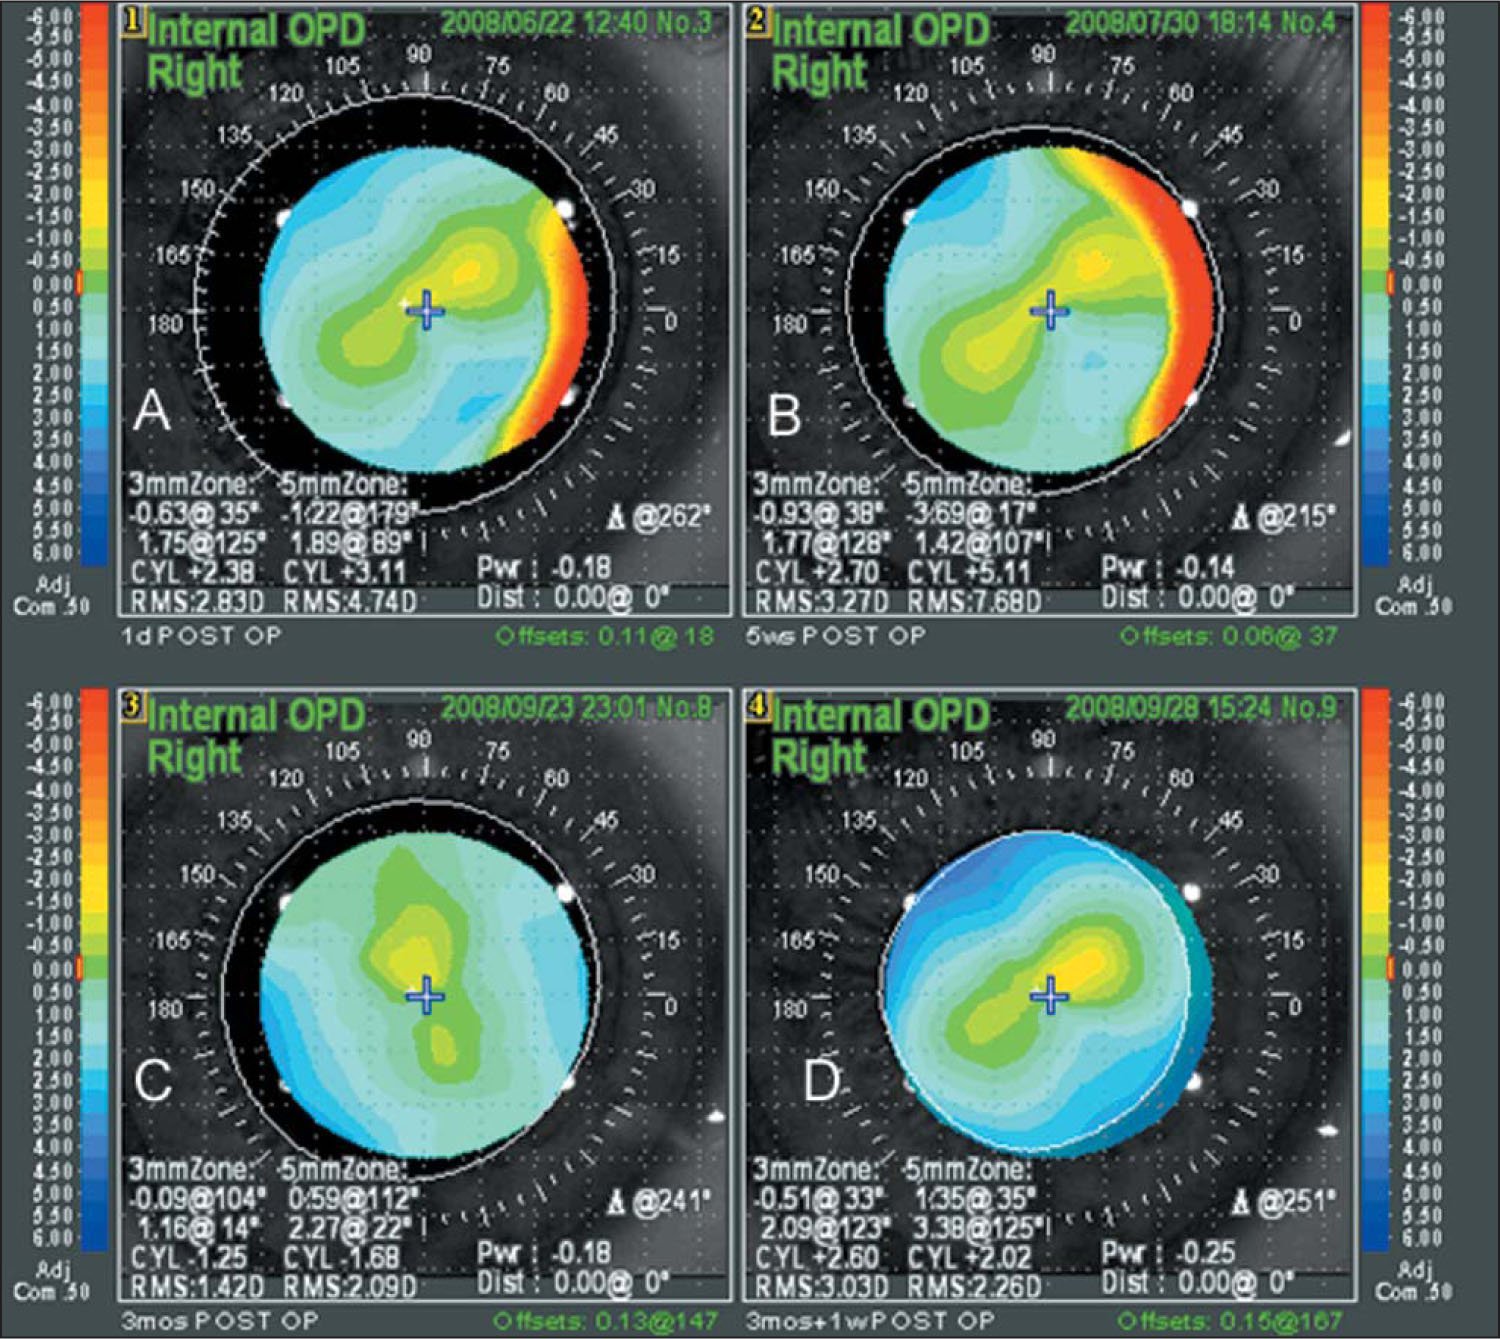 Internal OPD Map Showing the Axis Alignment of the Toric Implantable Collamer Lens in One Eye at A) Baseline (day 1), B) 1 Month, C) 3 Months (which Shows Significant Misalignment), and D) After Repositioning.